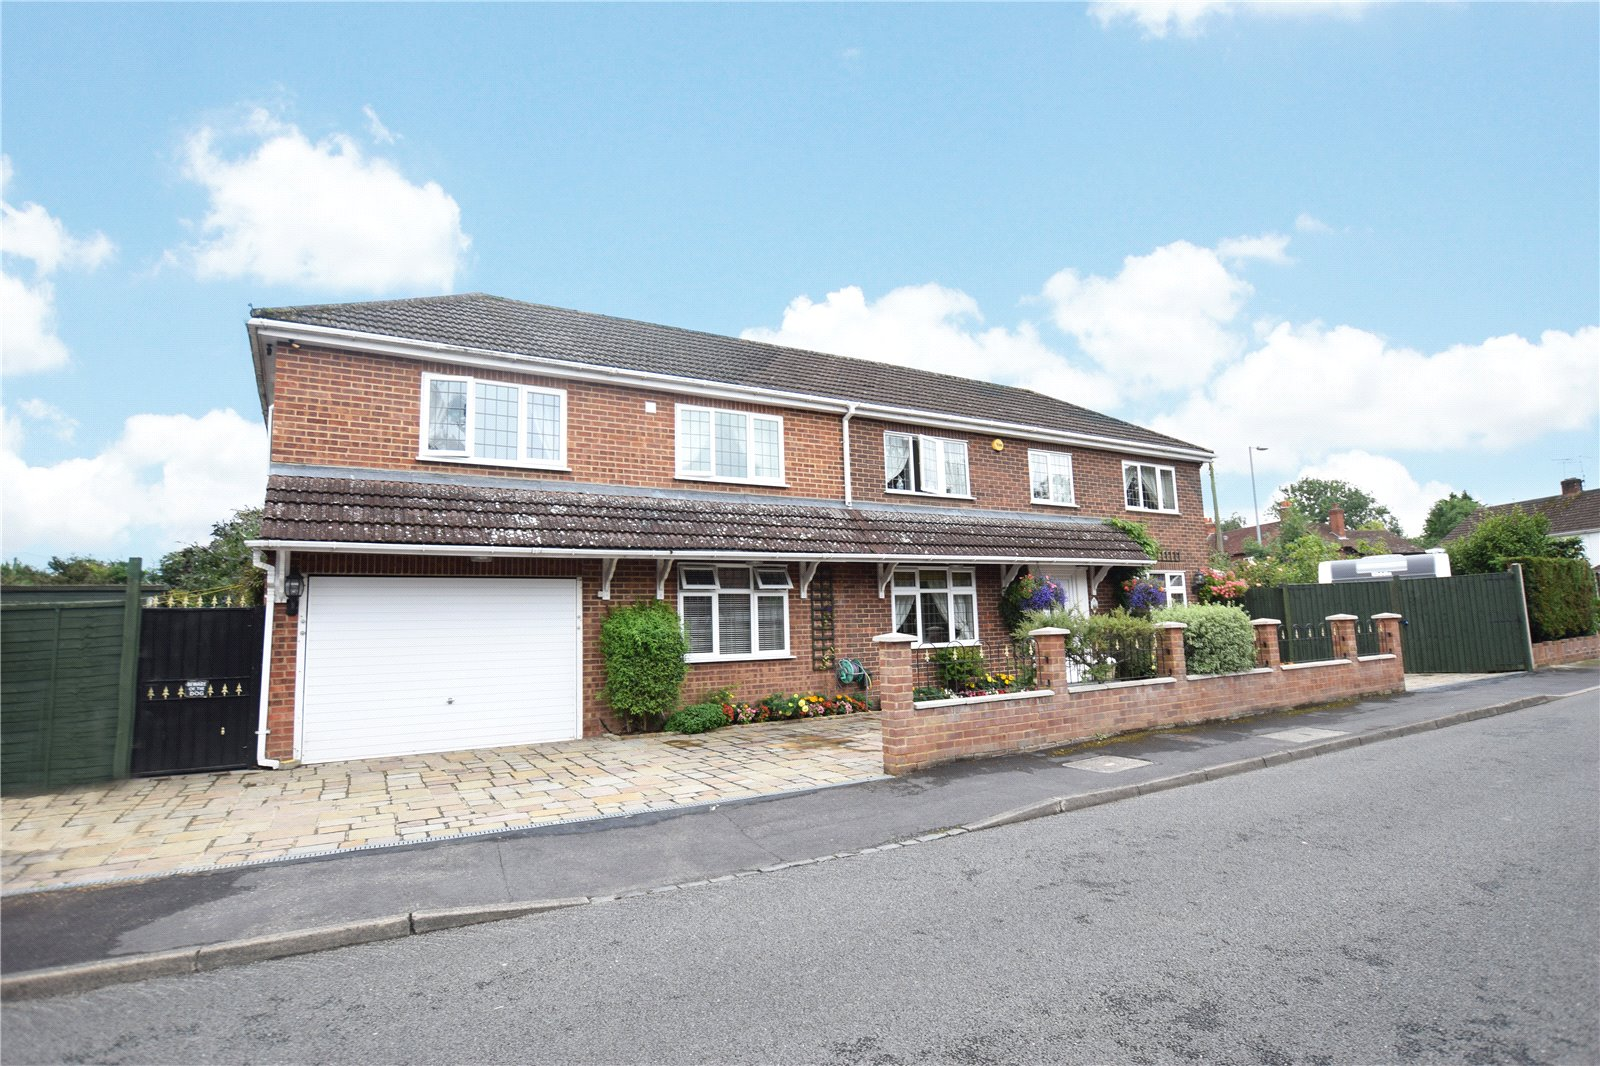 4 Bedrooms Detached House for sale in Manor Close, Bracknell, Berkshire, RG42